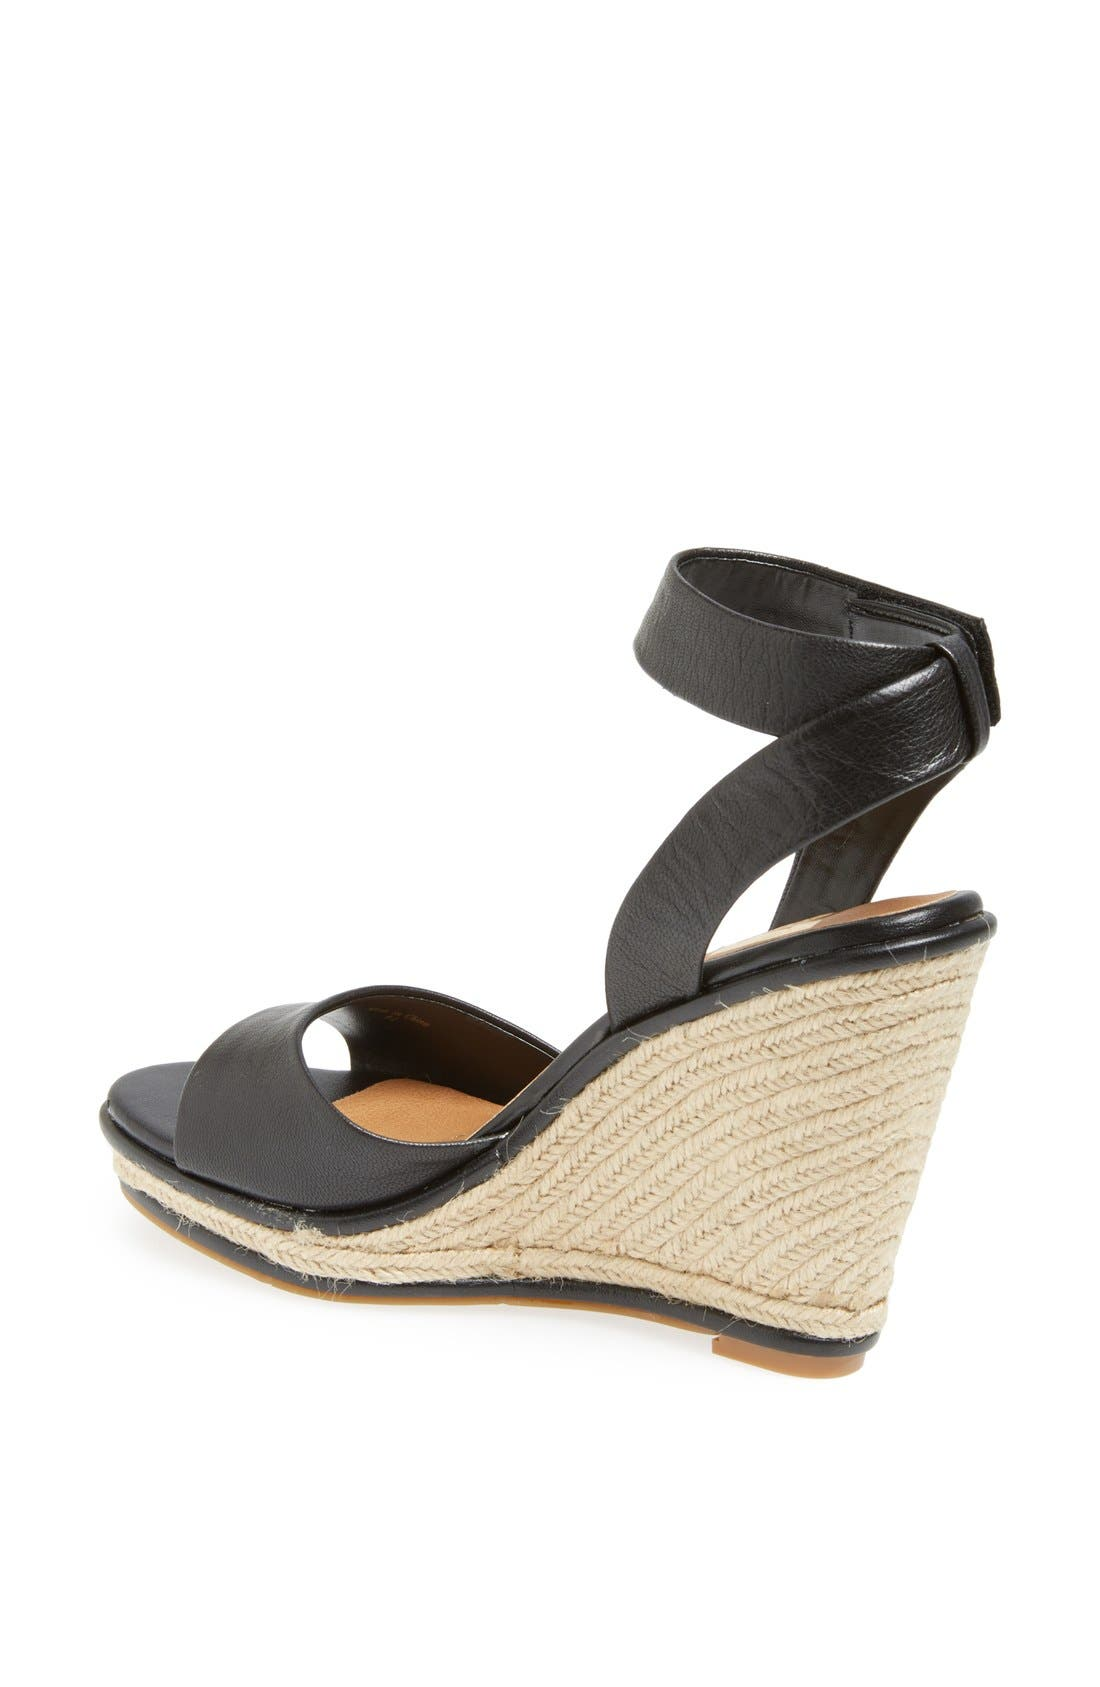 DV by Dolce Vita 'Tonya' Sandal,                             Alternate thumbnail 4, color,                             001